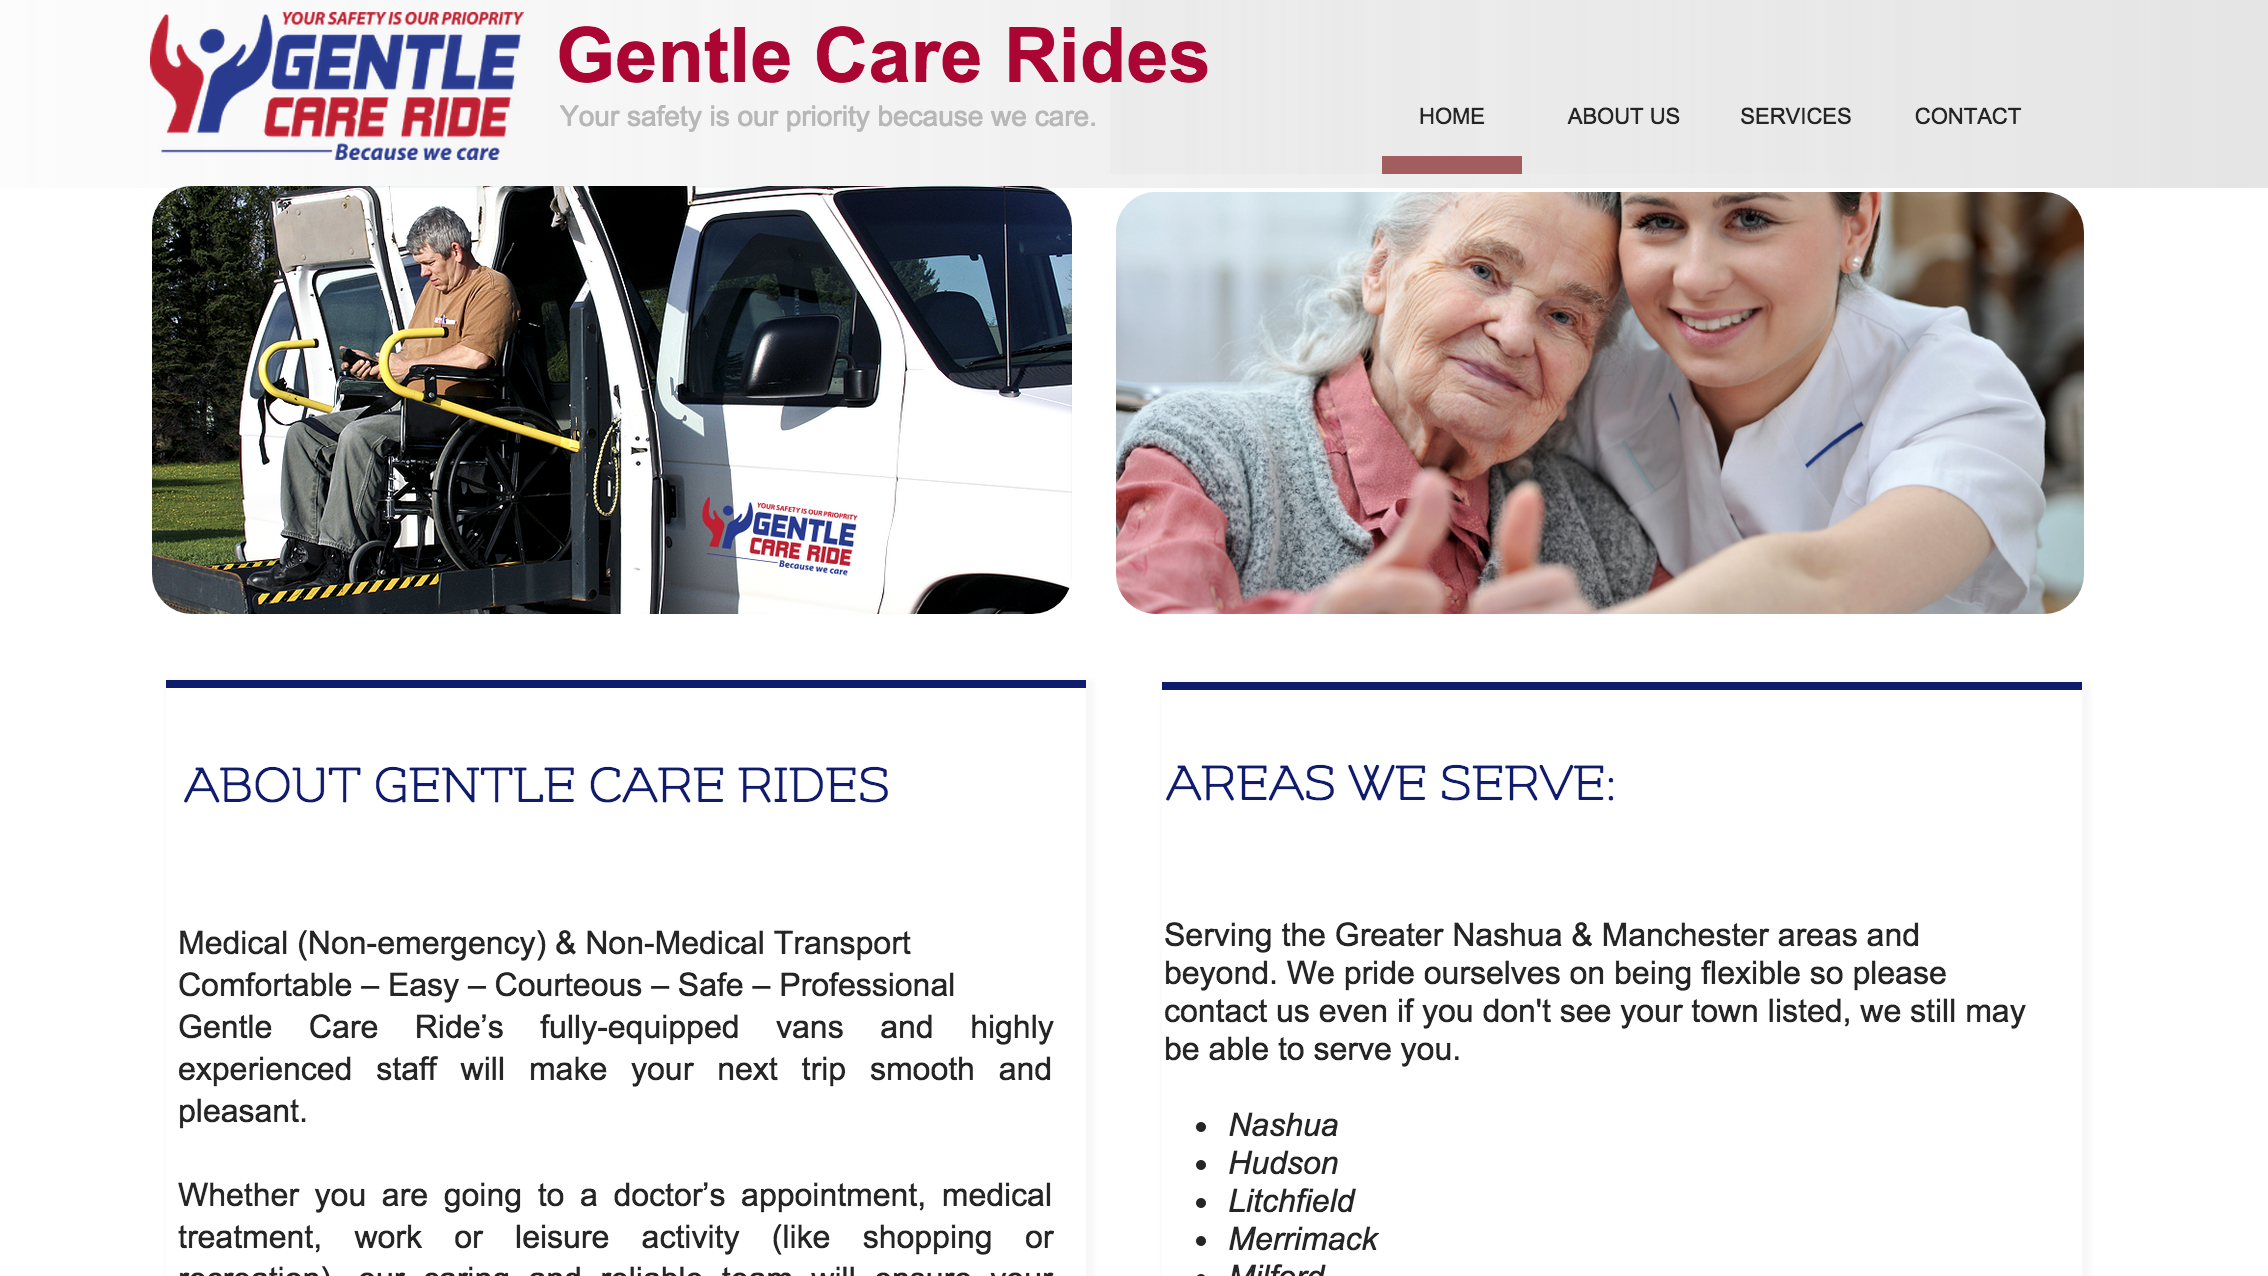 Gentle Care RidesNashua, New Hampshire - Medical (Non-emergency) & Non-Medical Transport Comfortable – Easy – Courteous – Safe – ProfessionalGentle Care Ride's fully-equipped vans and highly experienced staff will make your next trip smooth and pleasant.Whether you are going to a doctor's appointment, medical treatment, work or leisure activity (like shopping or recreation), our caring and reliable team will ensure your safety and timeliness.